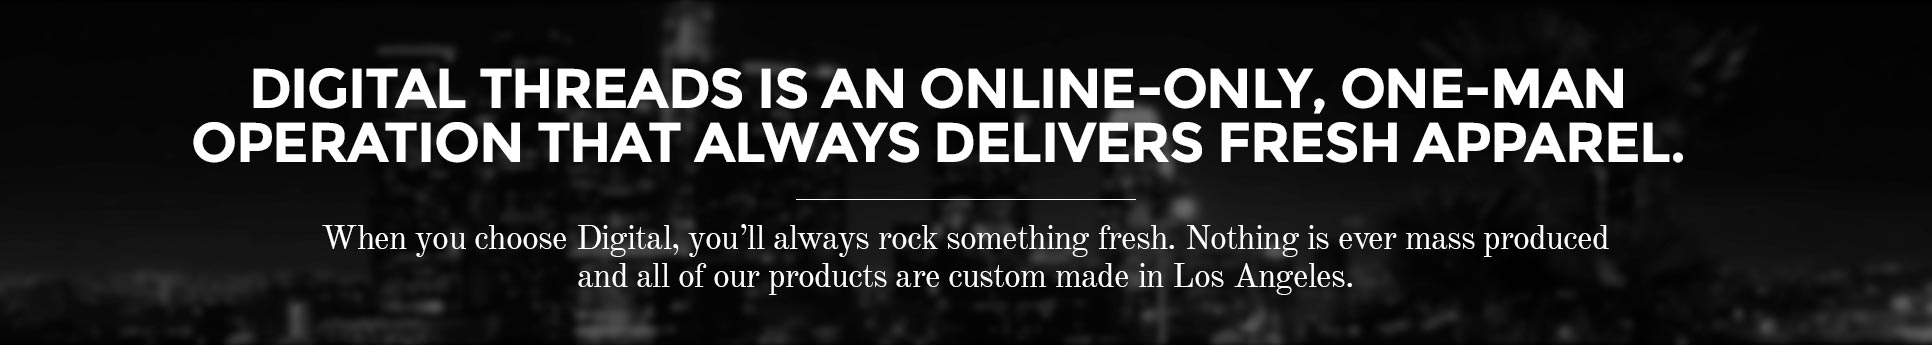 Digital Threads is an online-only, one-man operation that always delivers fresh apparel.